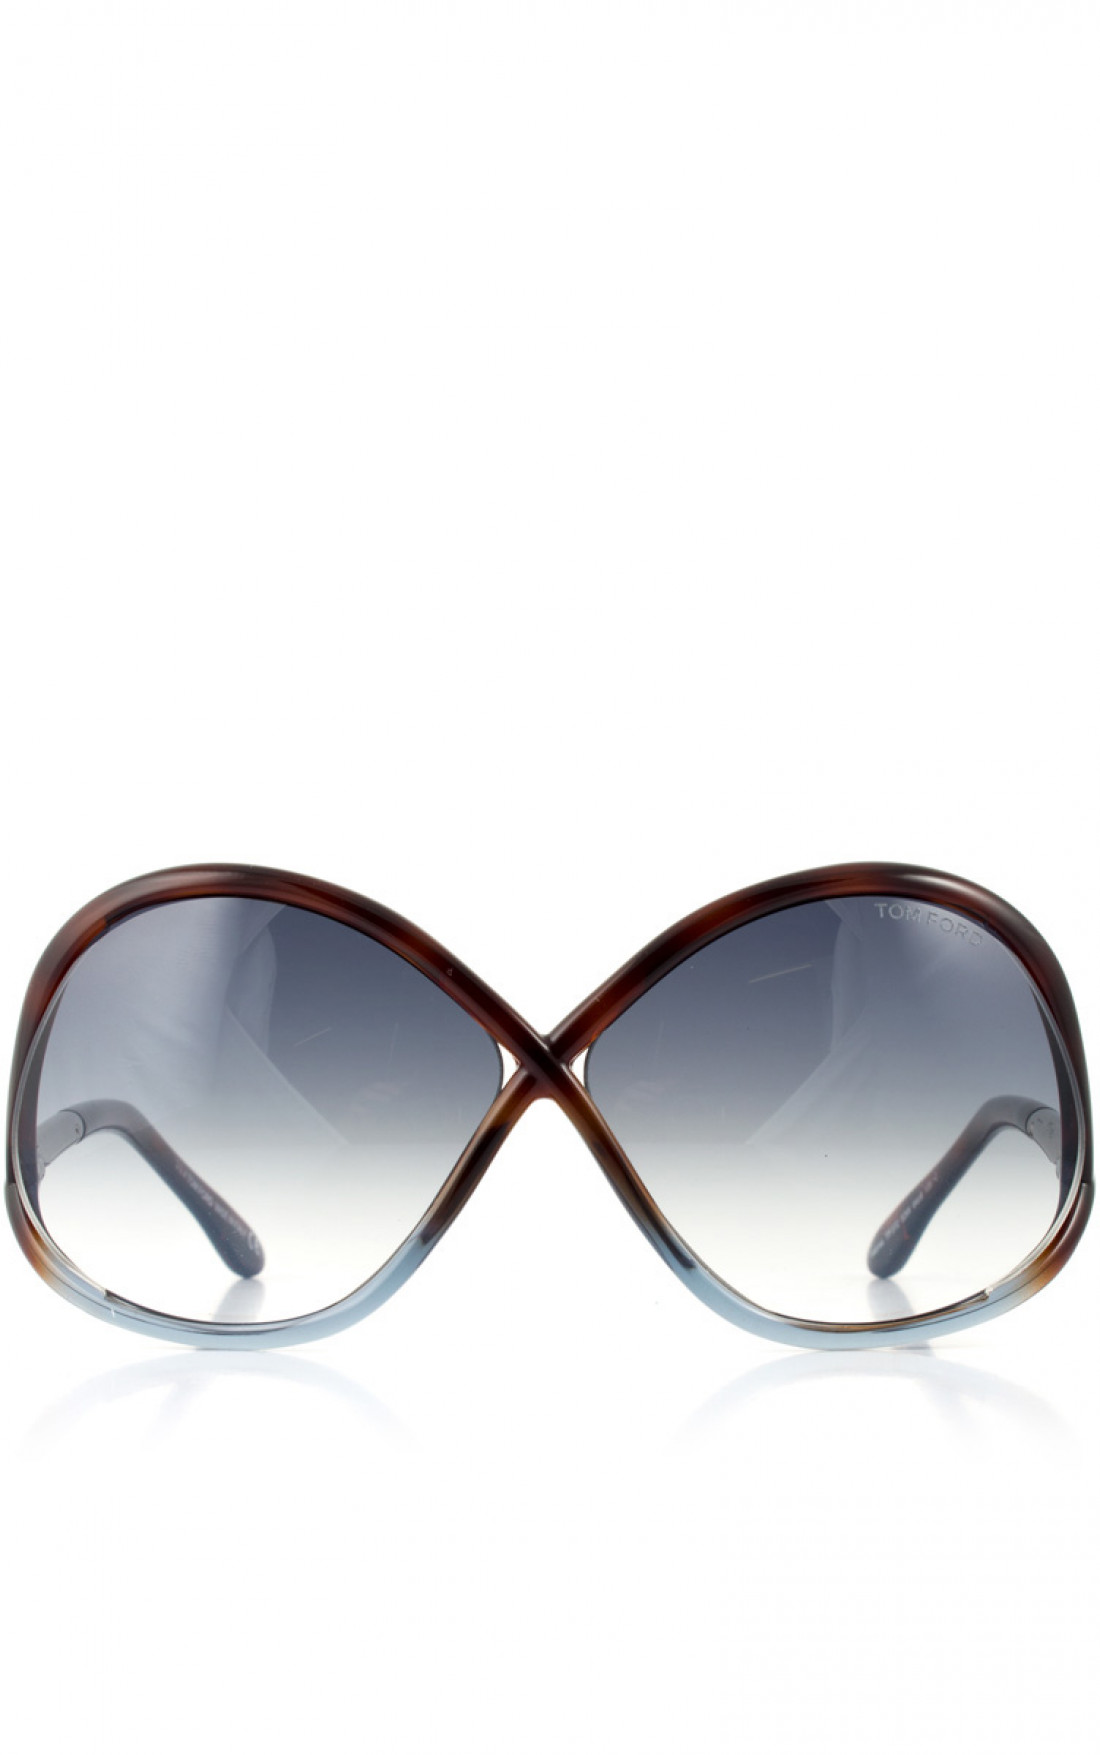 TOM FORD - 'Ivanna' Sunglasses Dark Havana Front (FT0372)